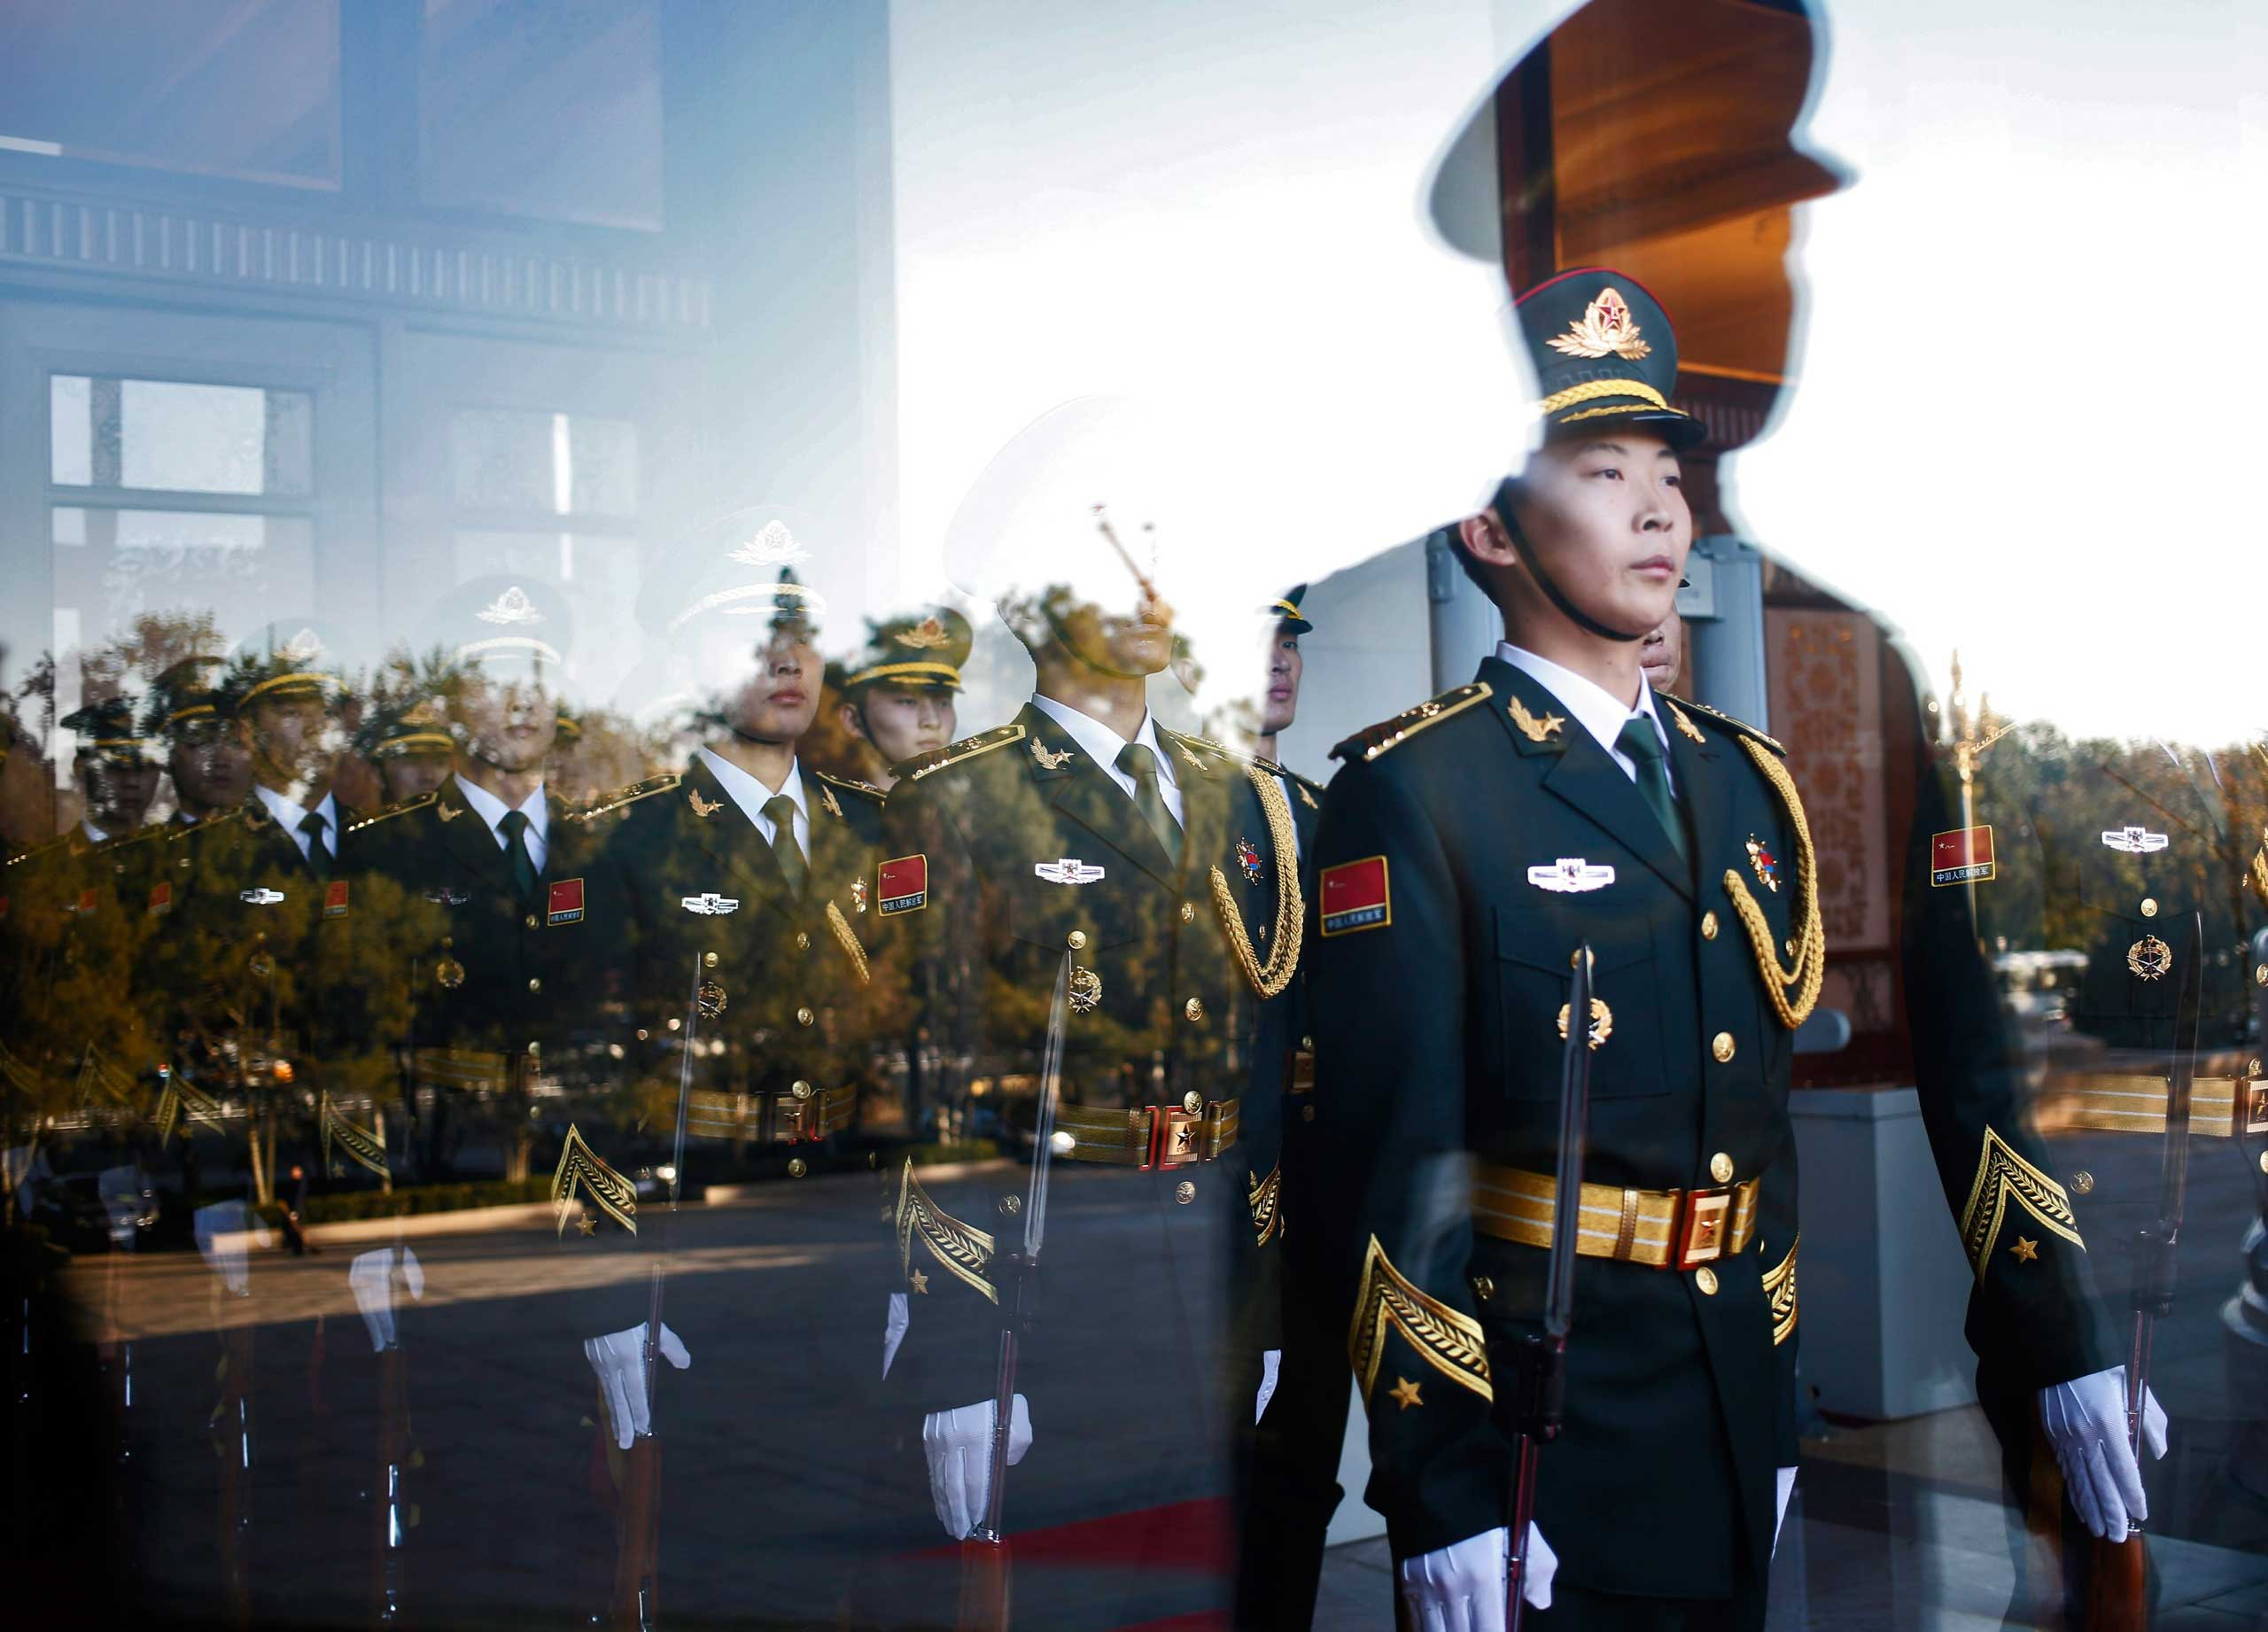 Nov. 3, 2014. Chinese honor guards are seen through a glass door before a welcome ceremony for the Emir of Qatar, Sheikh Tamim bin Hamad Al Thani, at the Great Hall of the People in Beijing. Qatar's Emir is in China for a state visit from Nov. 2 to Nov. 4.